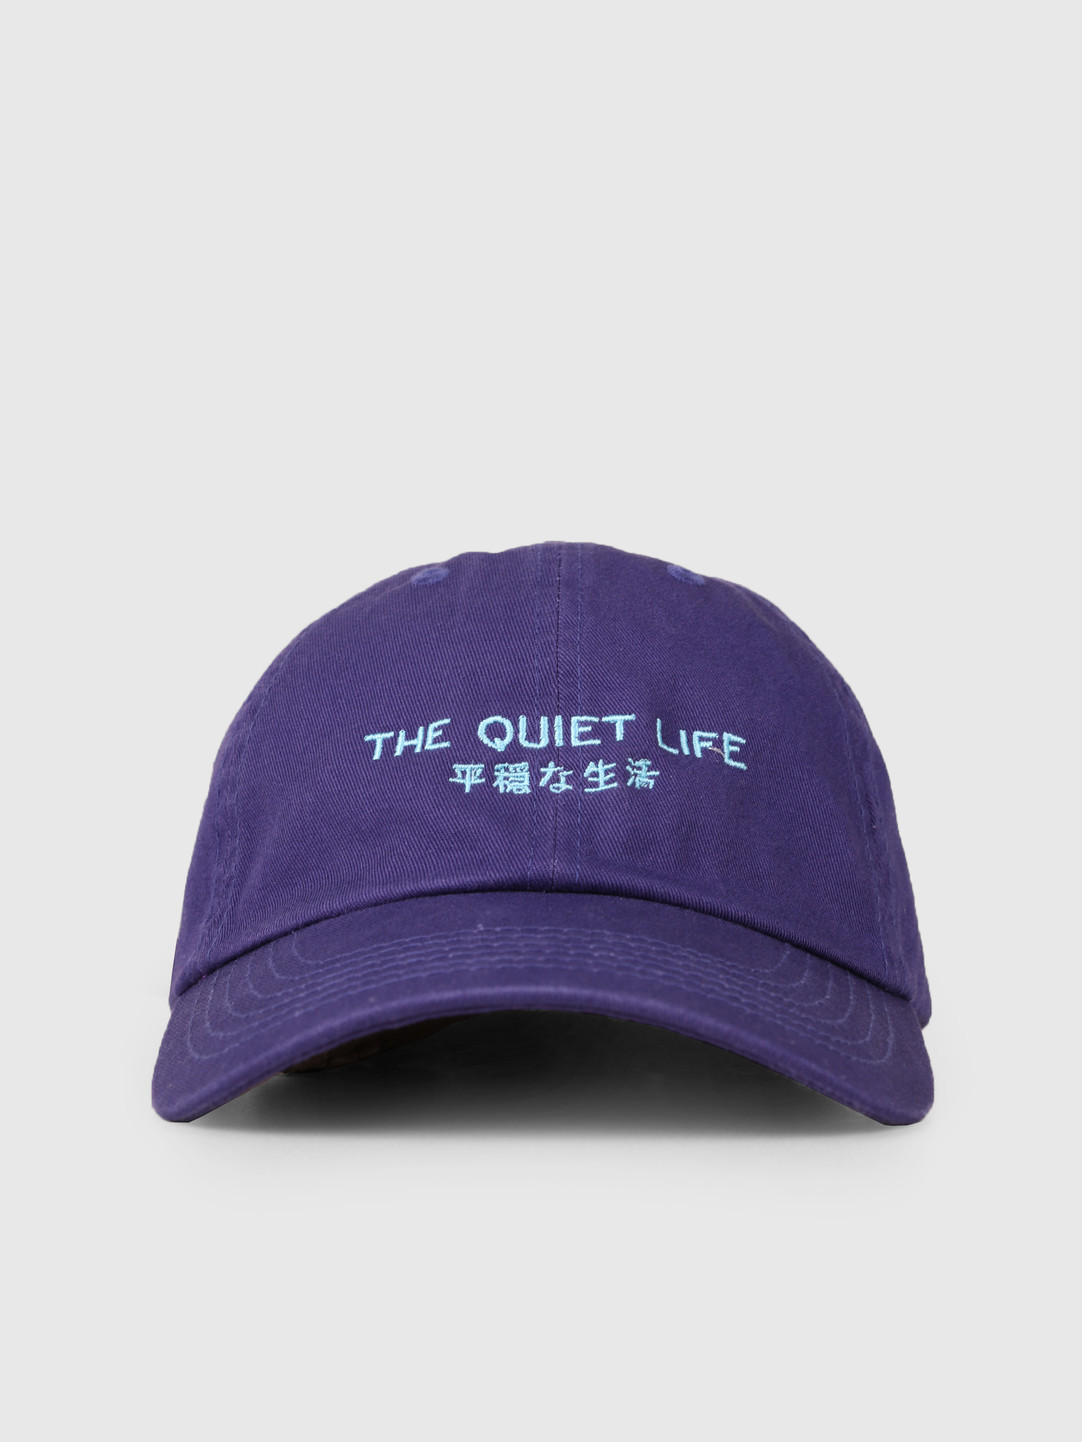 The Quiet Life The Quiet Life Japan Dad Hat Purple 19SPD2-2198-PUR-OS